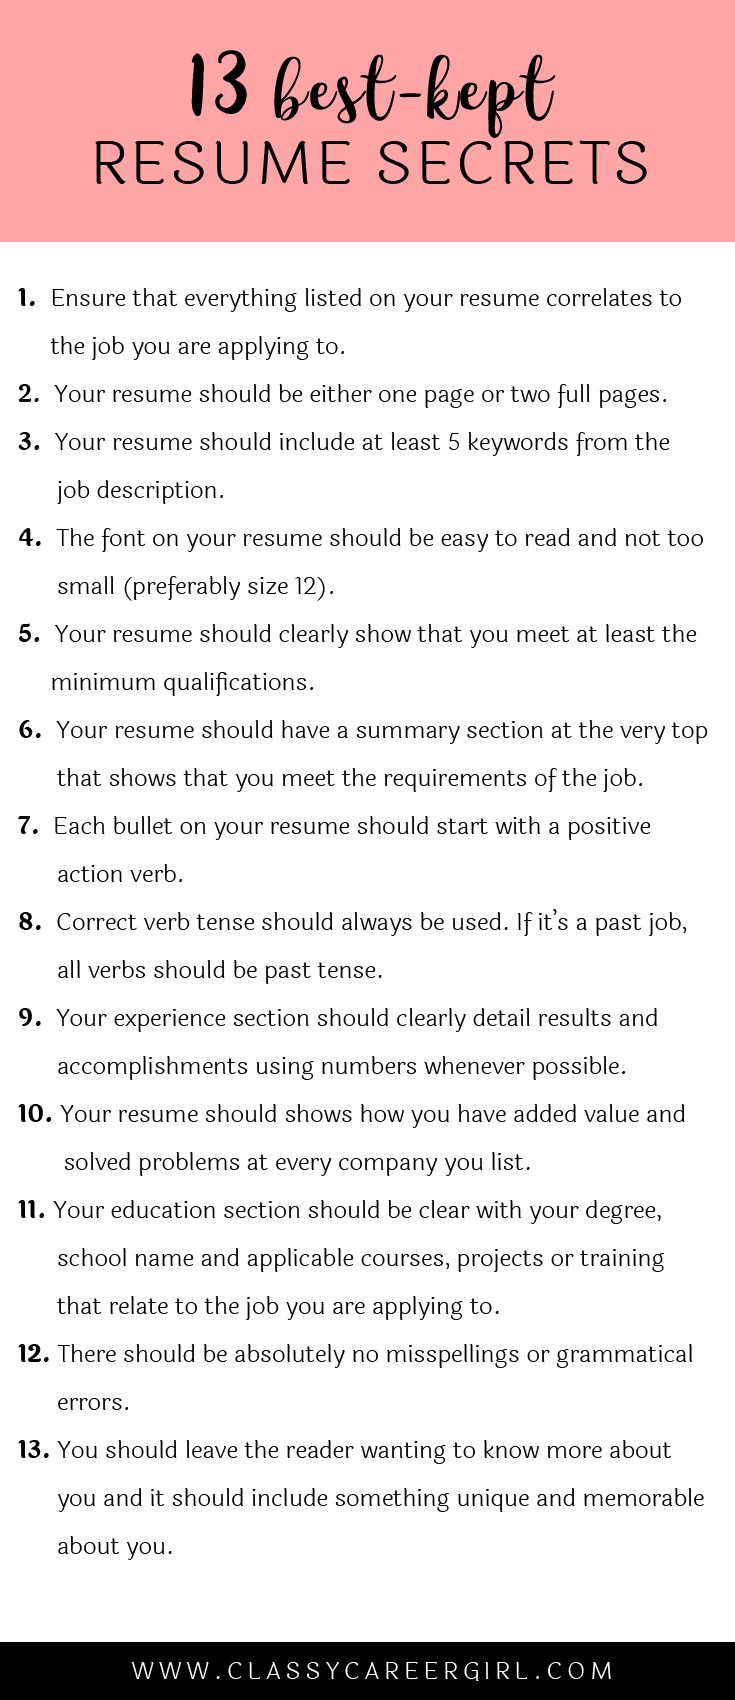 Opposenewapstandardsus  Personable  Ideas About Resume On Pinterest  Cv Format Resume  With Inspiring Some Hiring Managers Will Toss Your Resume Out If You Dont Know These  With Easy On The Eye Freshman Resume Also Payroll Manager Resume In Addition Athletic Training Resume And Sample Waitress Resume As Well As Eye Catching Resumes Additionally Graphic Artist Resume From Pinterestcom With Opposenewapstandardsus  Inspiring  Ideas About Resume On Pinterest  Cv Format Resume  With Easy On The Eye Some Hiring Managers Will Toss Your Resume Out If You Dont Know These  And Personable Freshman Resume Also Payroll Manager Resume In Addition Athletic Training Resume From Pinterestcom